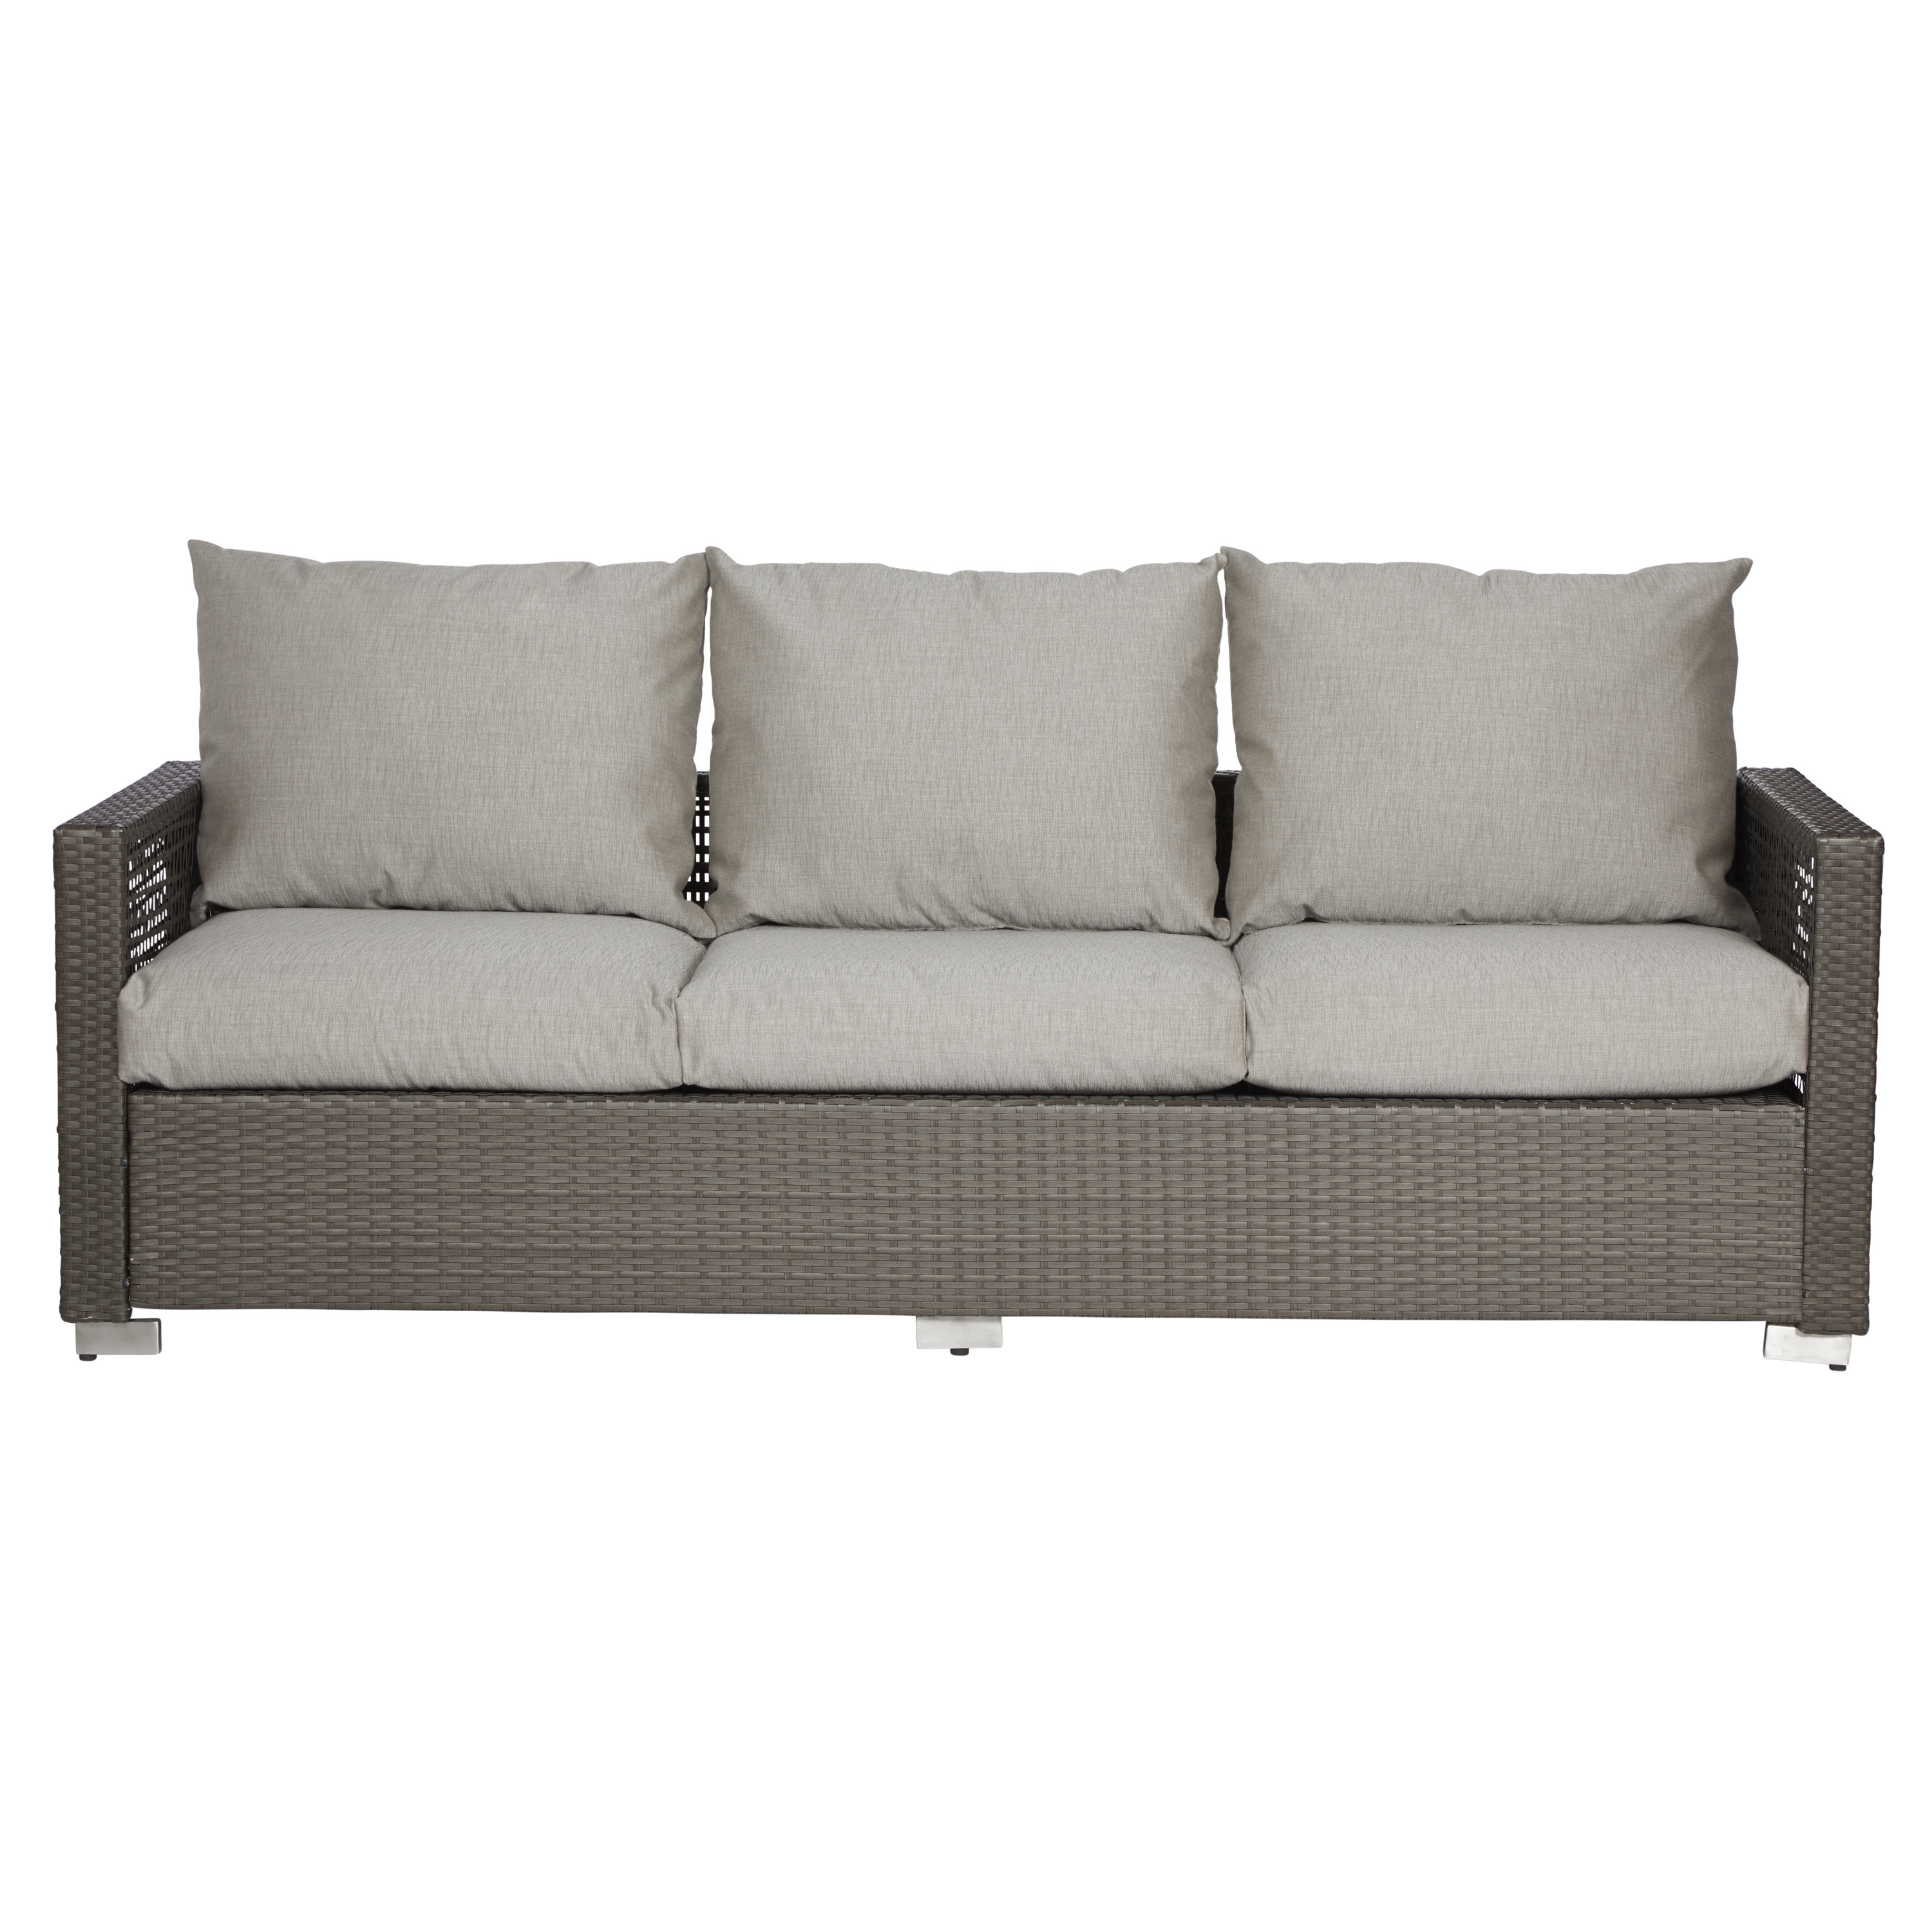 Mcmanis Patio Sofa With Cushions In Most Recently Released Silloth Patio Sofas With Cushions (View 7 of 20)